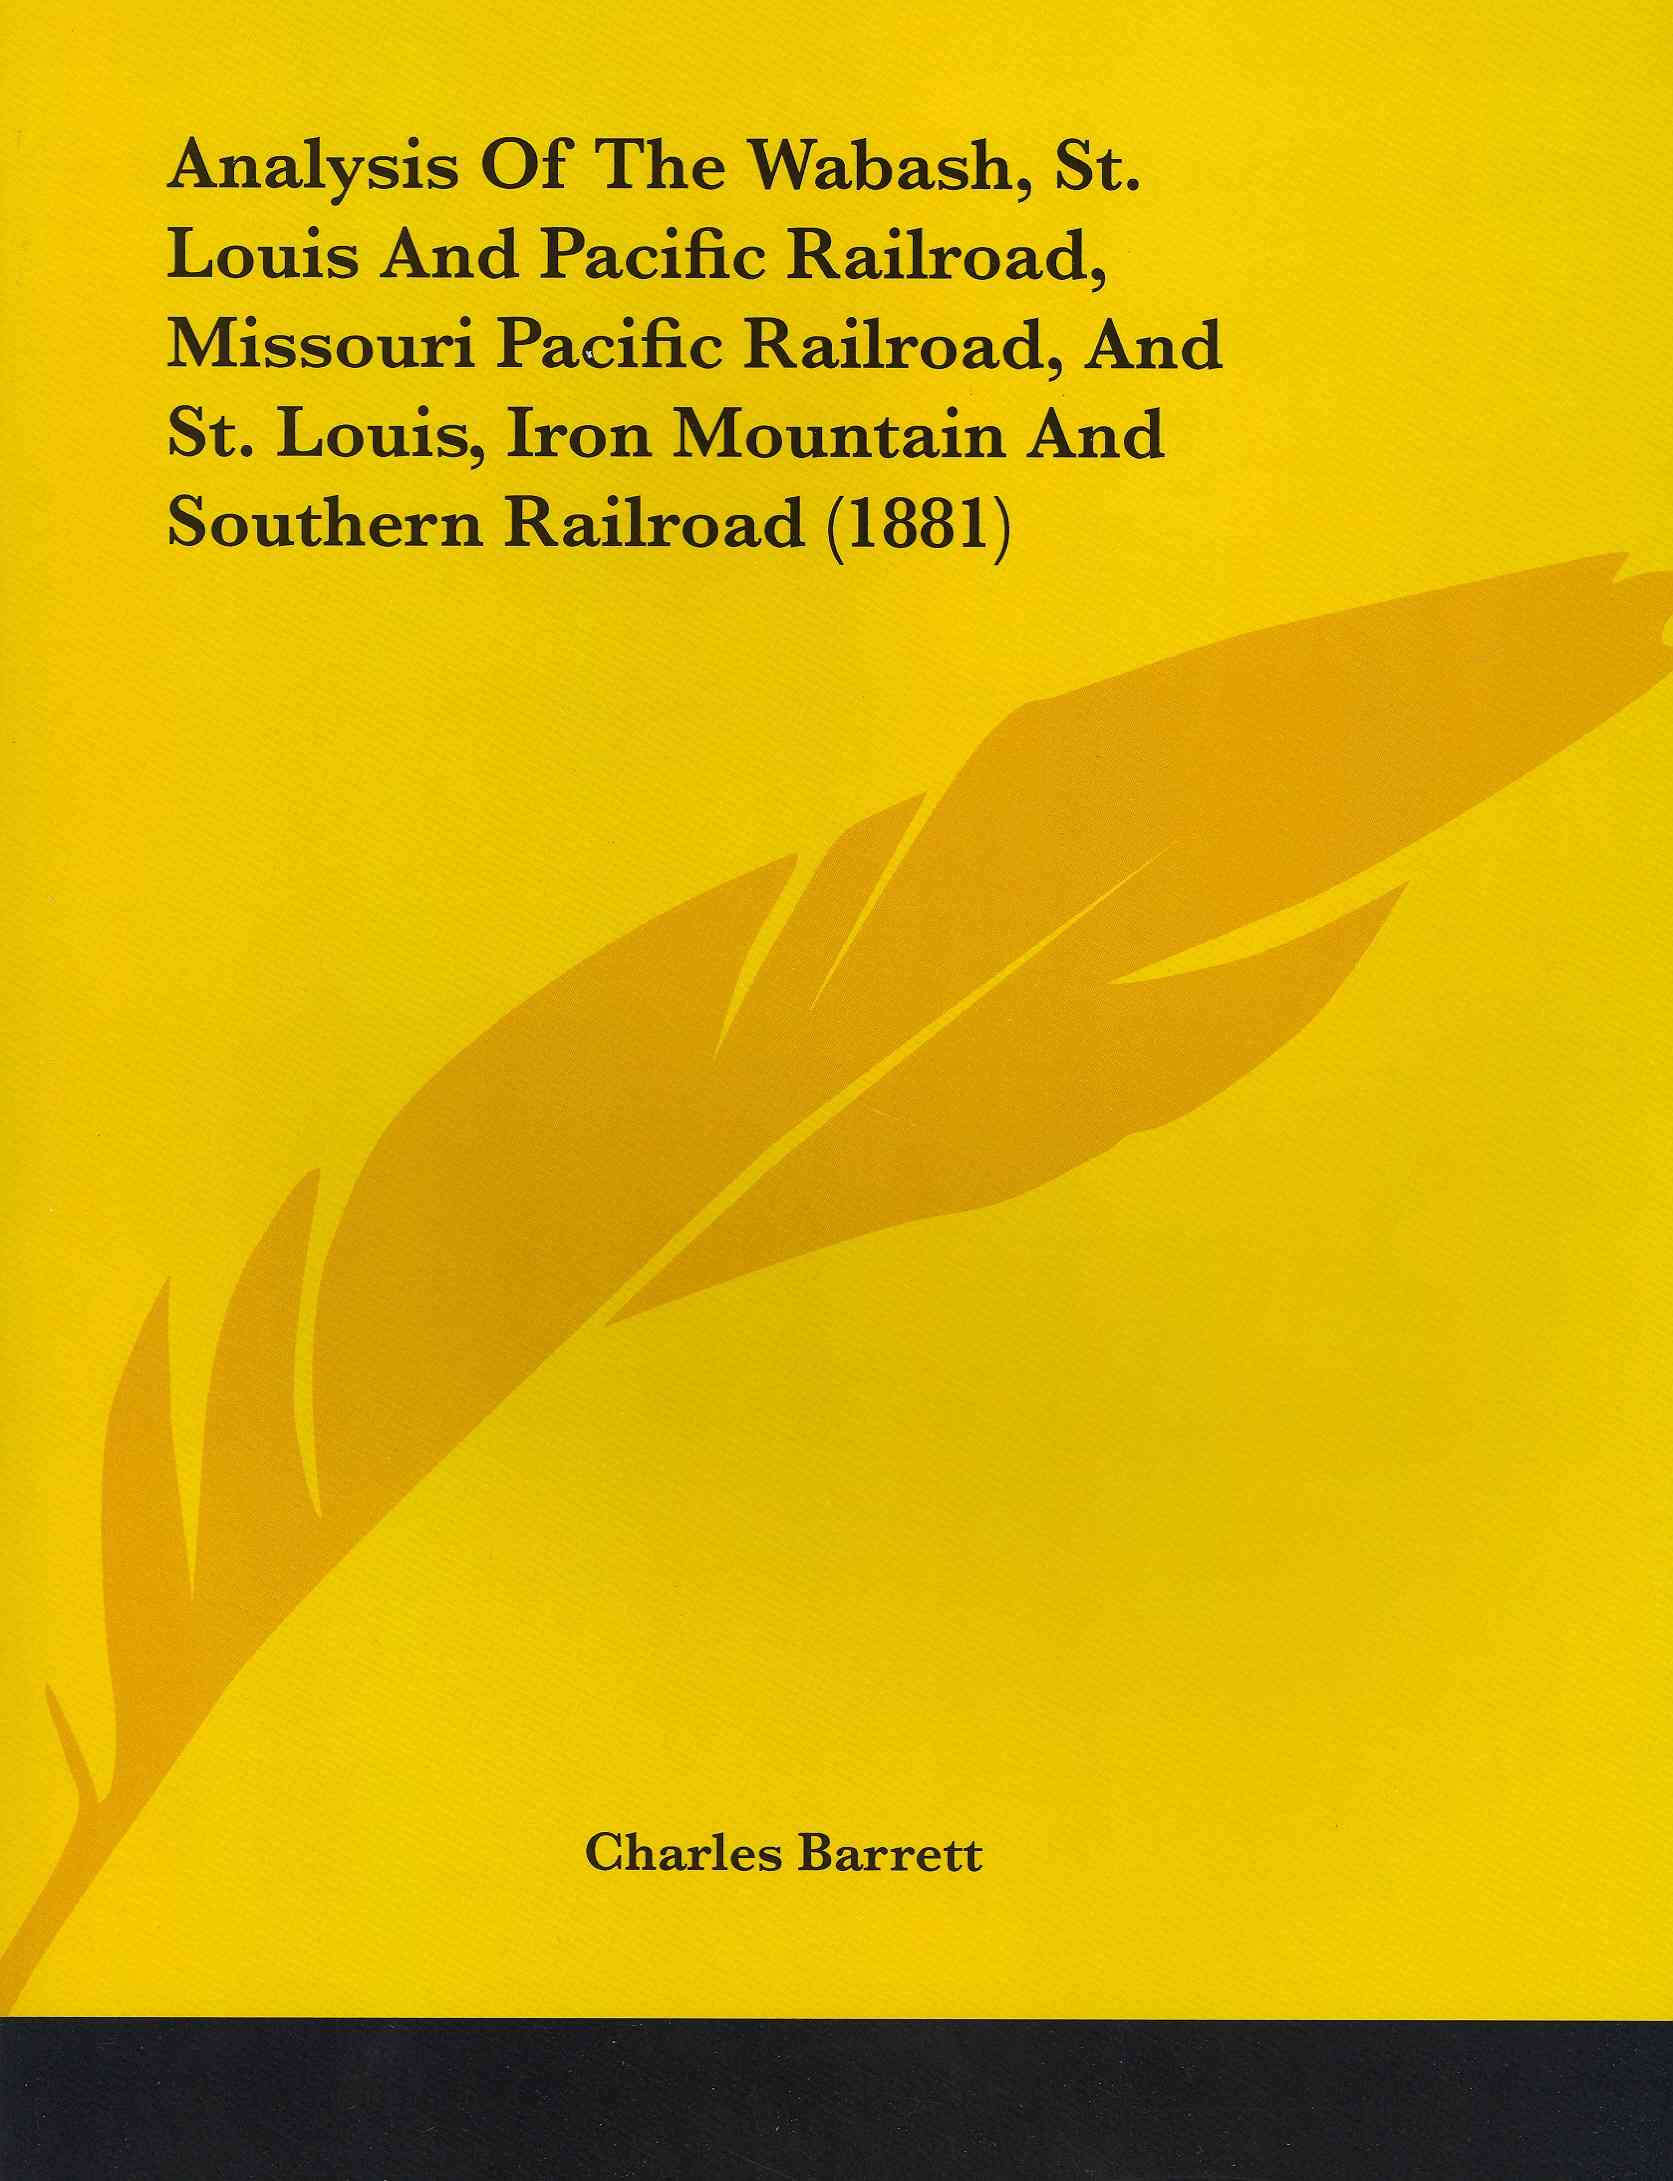 Analysis of the Wabash, St. Louis and Pacific Railroad, Missouri Pacific Railroad, and St. Louis, Iron Mountain and Southern Railroad (1881)